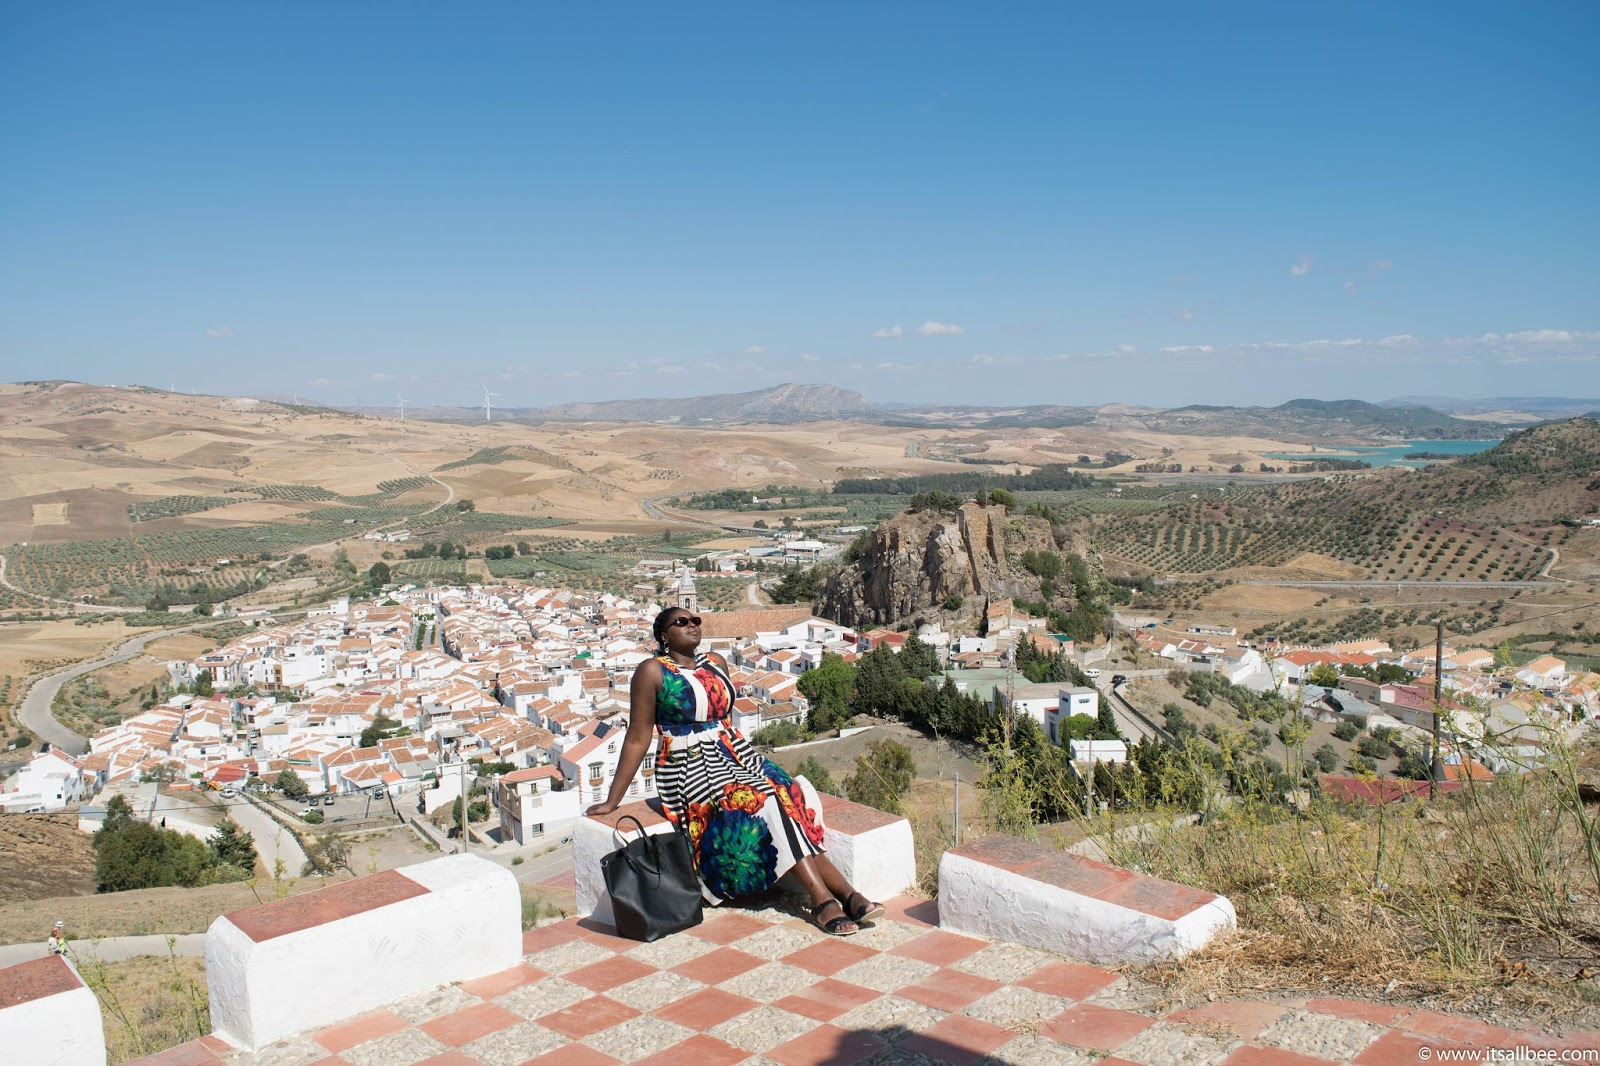 Top 7 Reasons To Visit Andalucia - With easy access to Cordoba, Seville, El Chorro and many beautiful Andalucian towns here are just a few more reasons why you need to explore this region in Spain. Also easily accessible via Malaga airport. Click for more details #traveltip #europe #sunshine #breaks #itsallbee